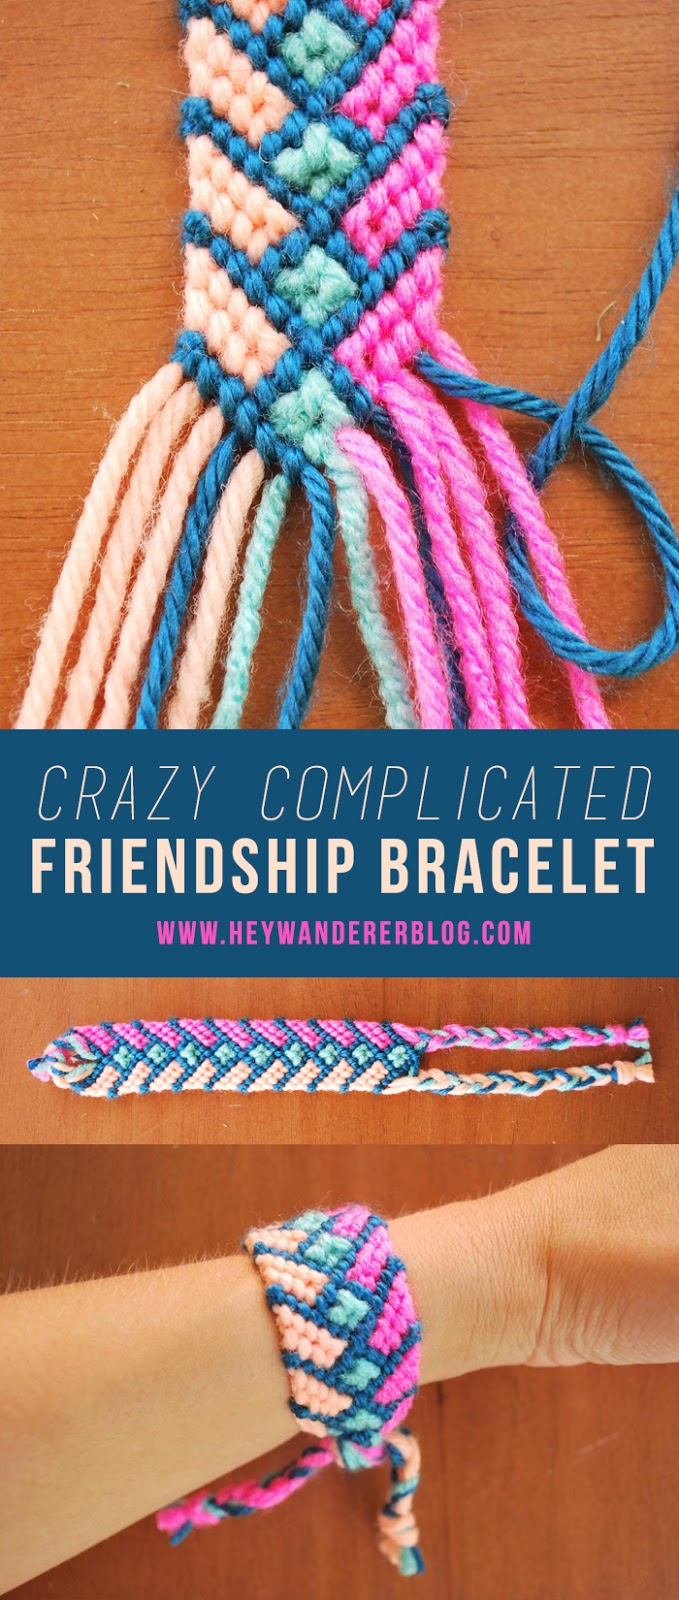 braided floss pin to embroidery made small bracelet order handmade fiber friendship